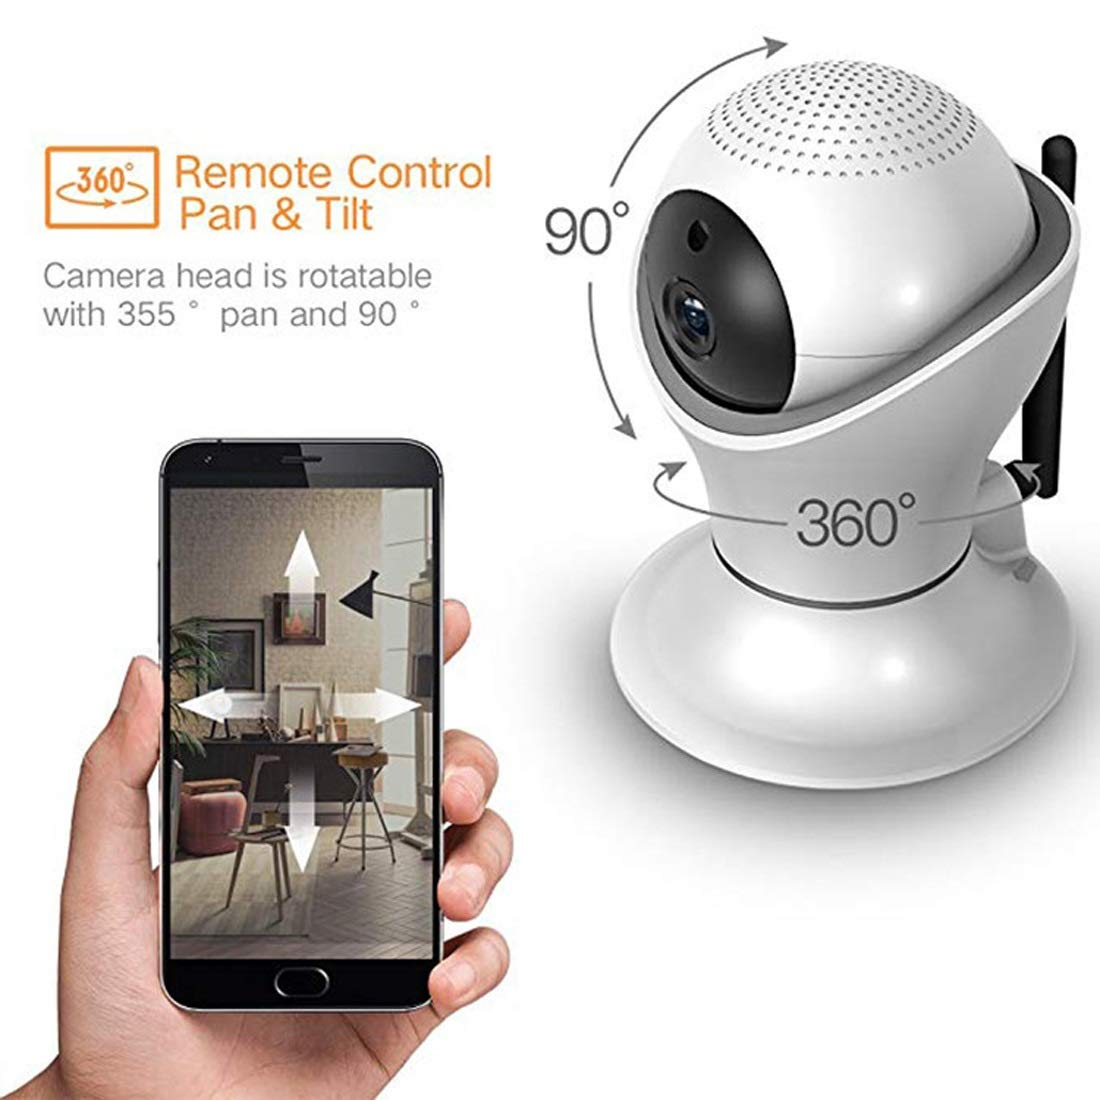 Carriemeow Wireless Camera WiFi Smart 1080p Network Remote Mobile Phone HD Night Vision Home Indoor Monitor